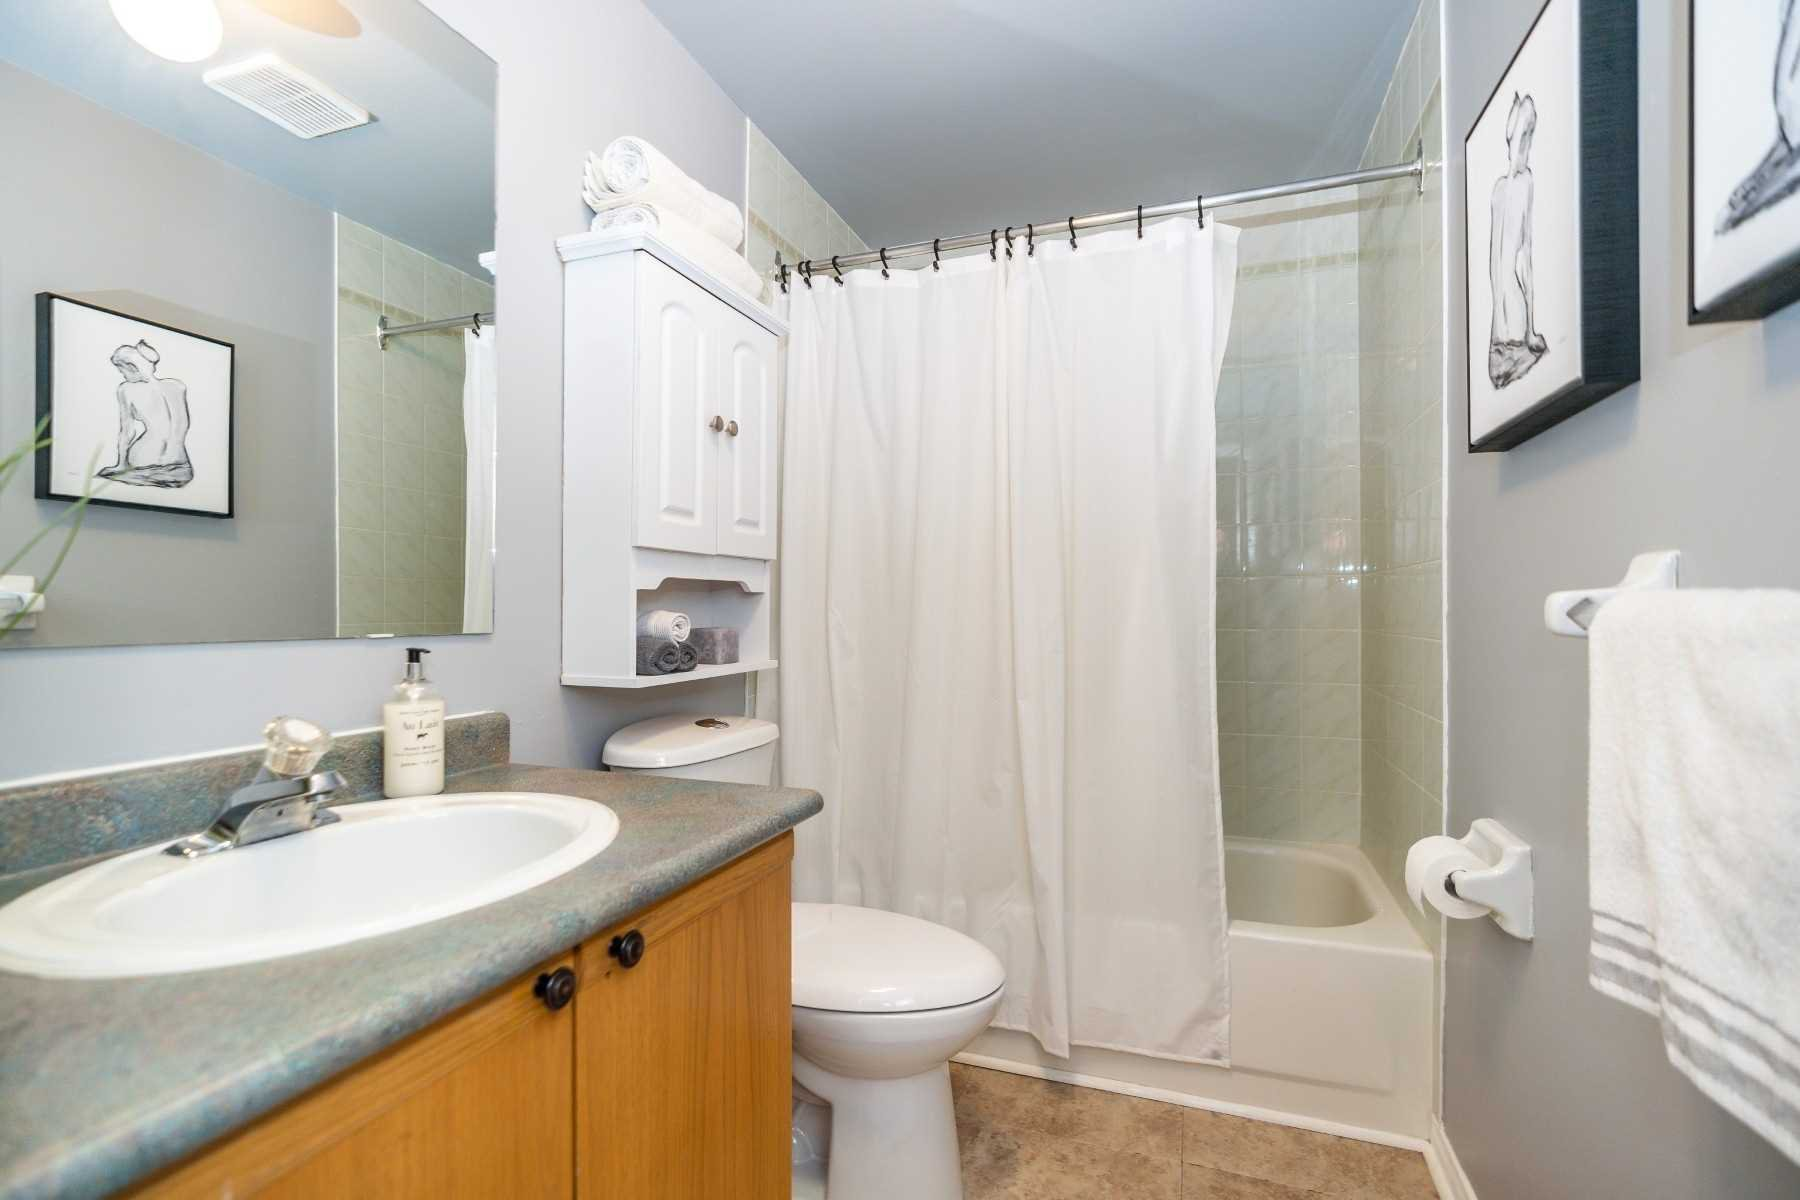 Photo 27: Photos: 1153 Snowberry Court in Oshawa: Pinecrest House (2-Storey) for sale : MLS®# E4794796